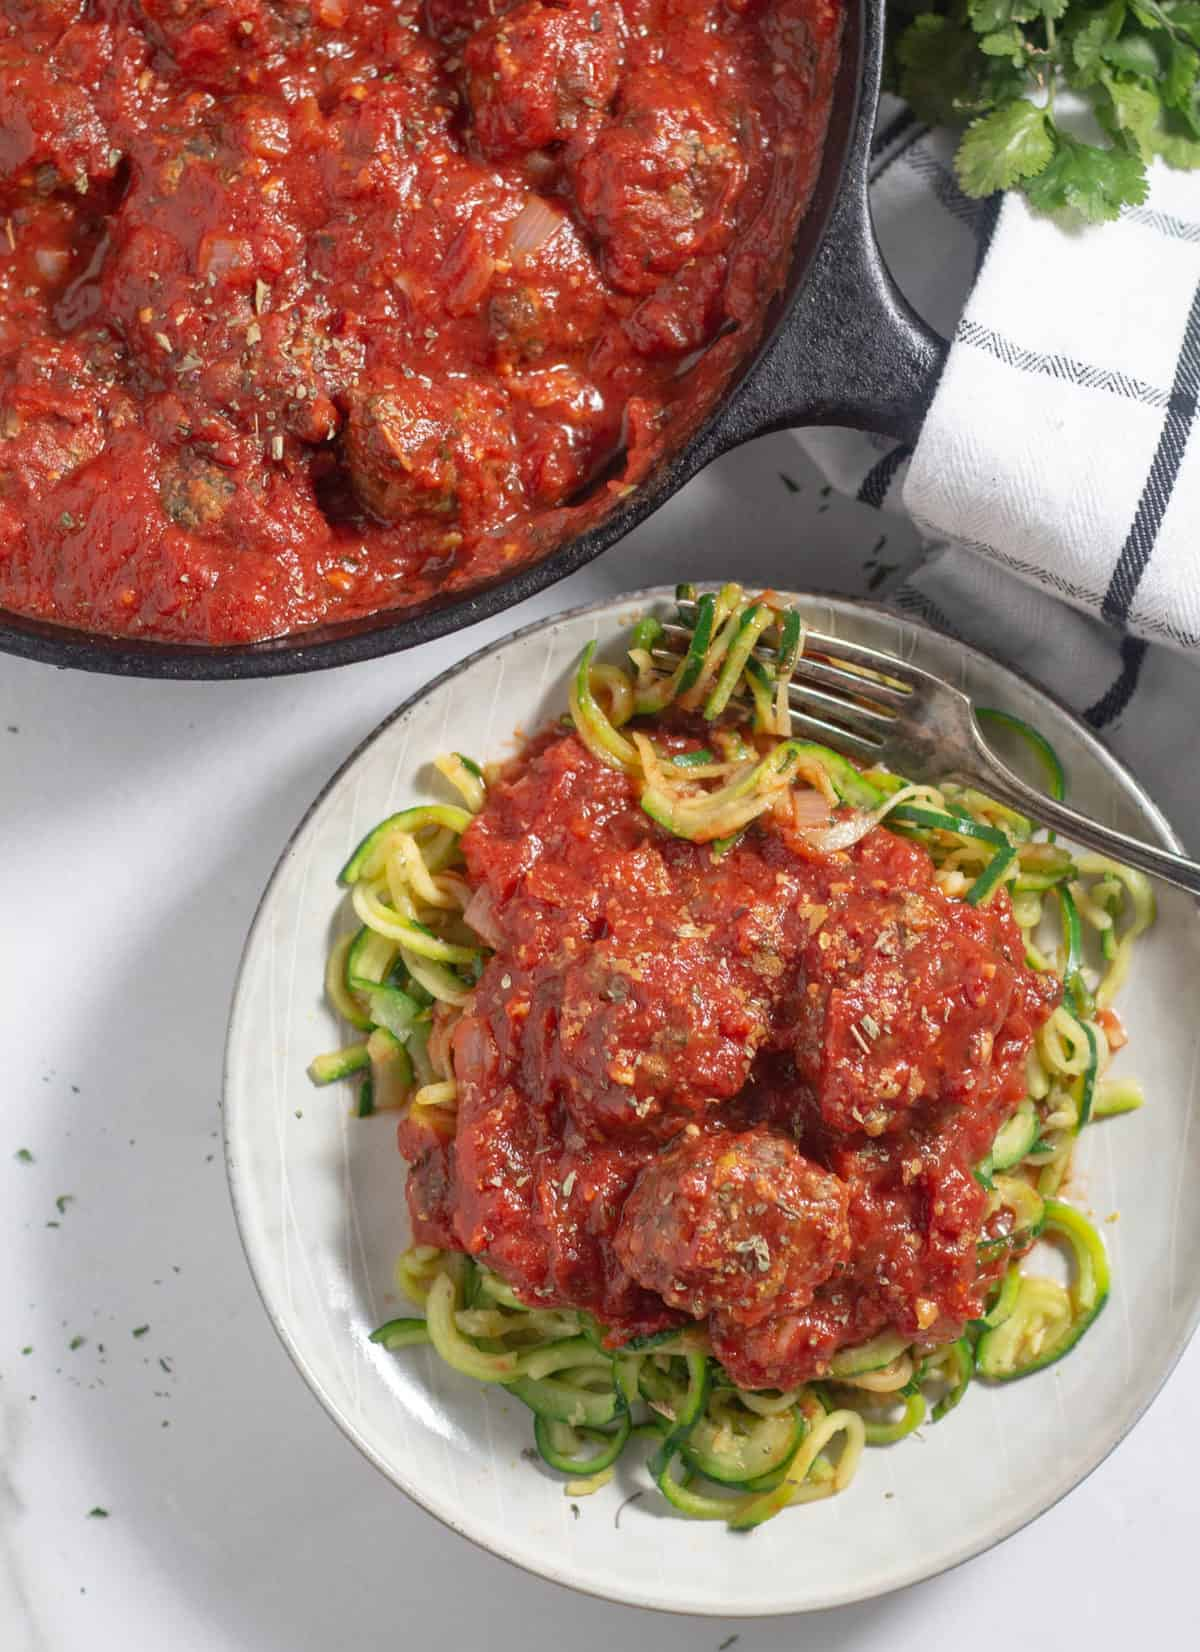 meatballs in marinara sauce over zucchini noodles